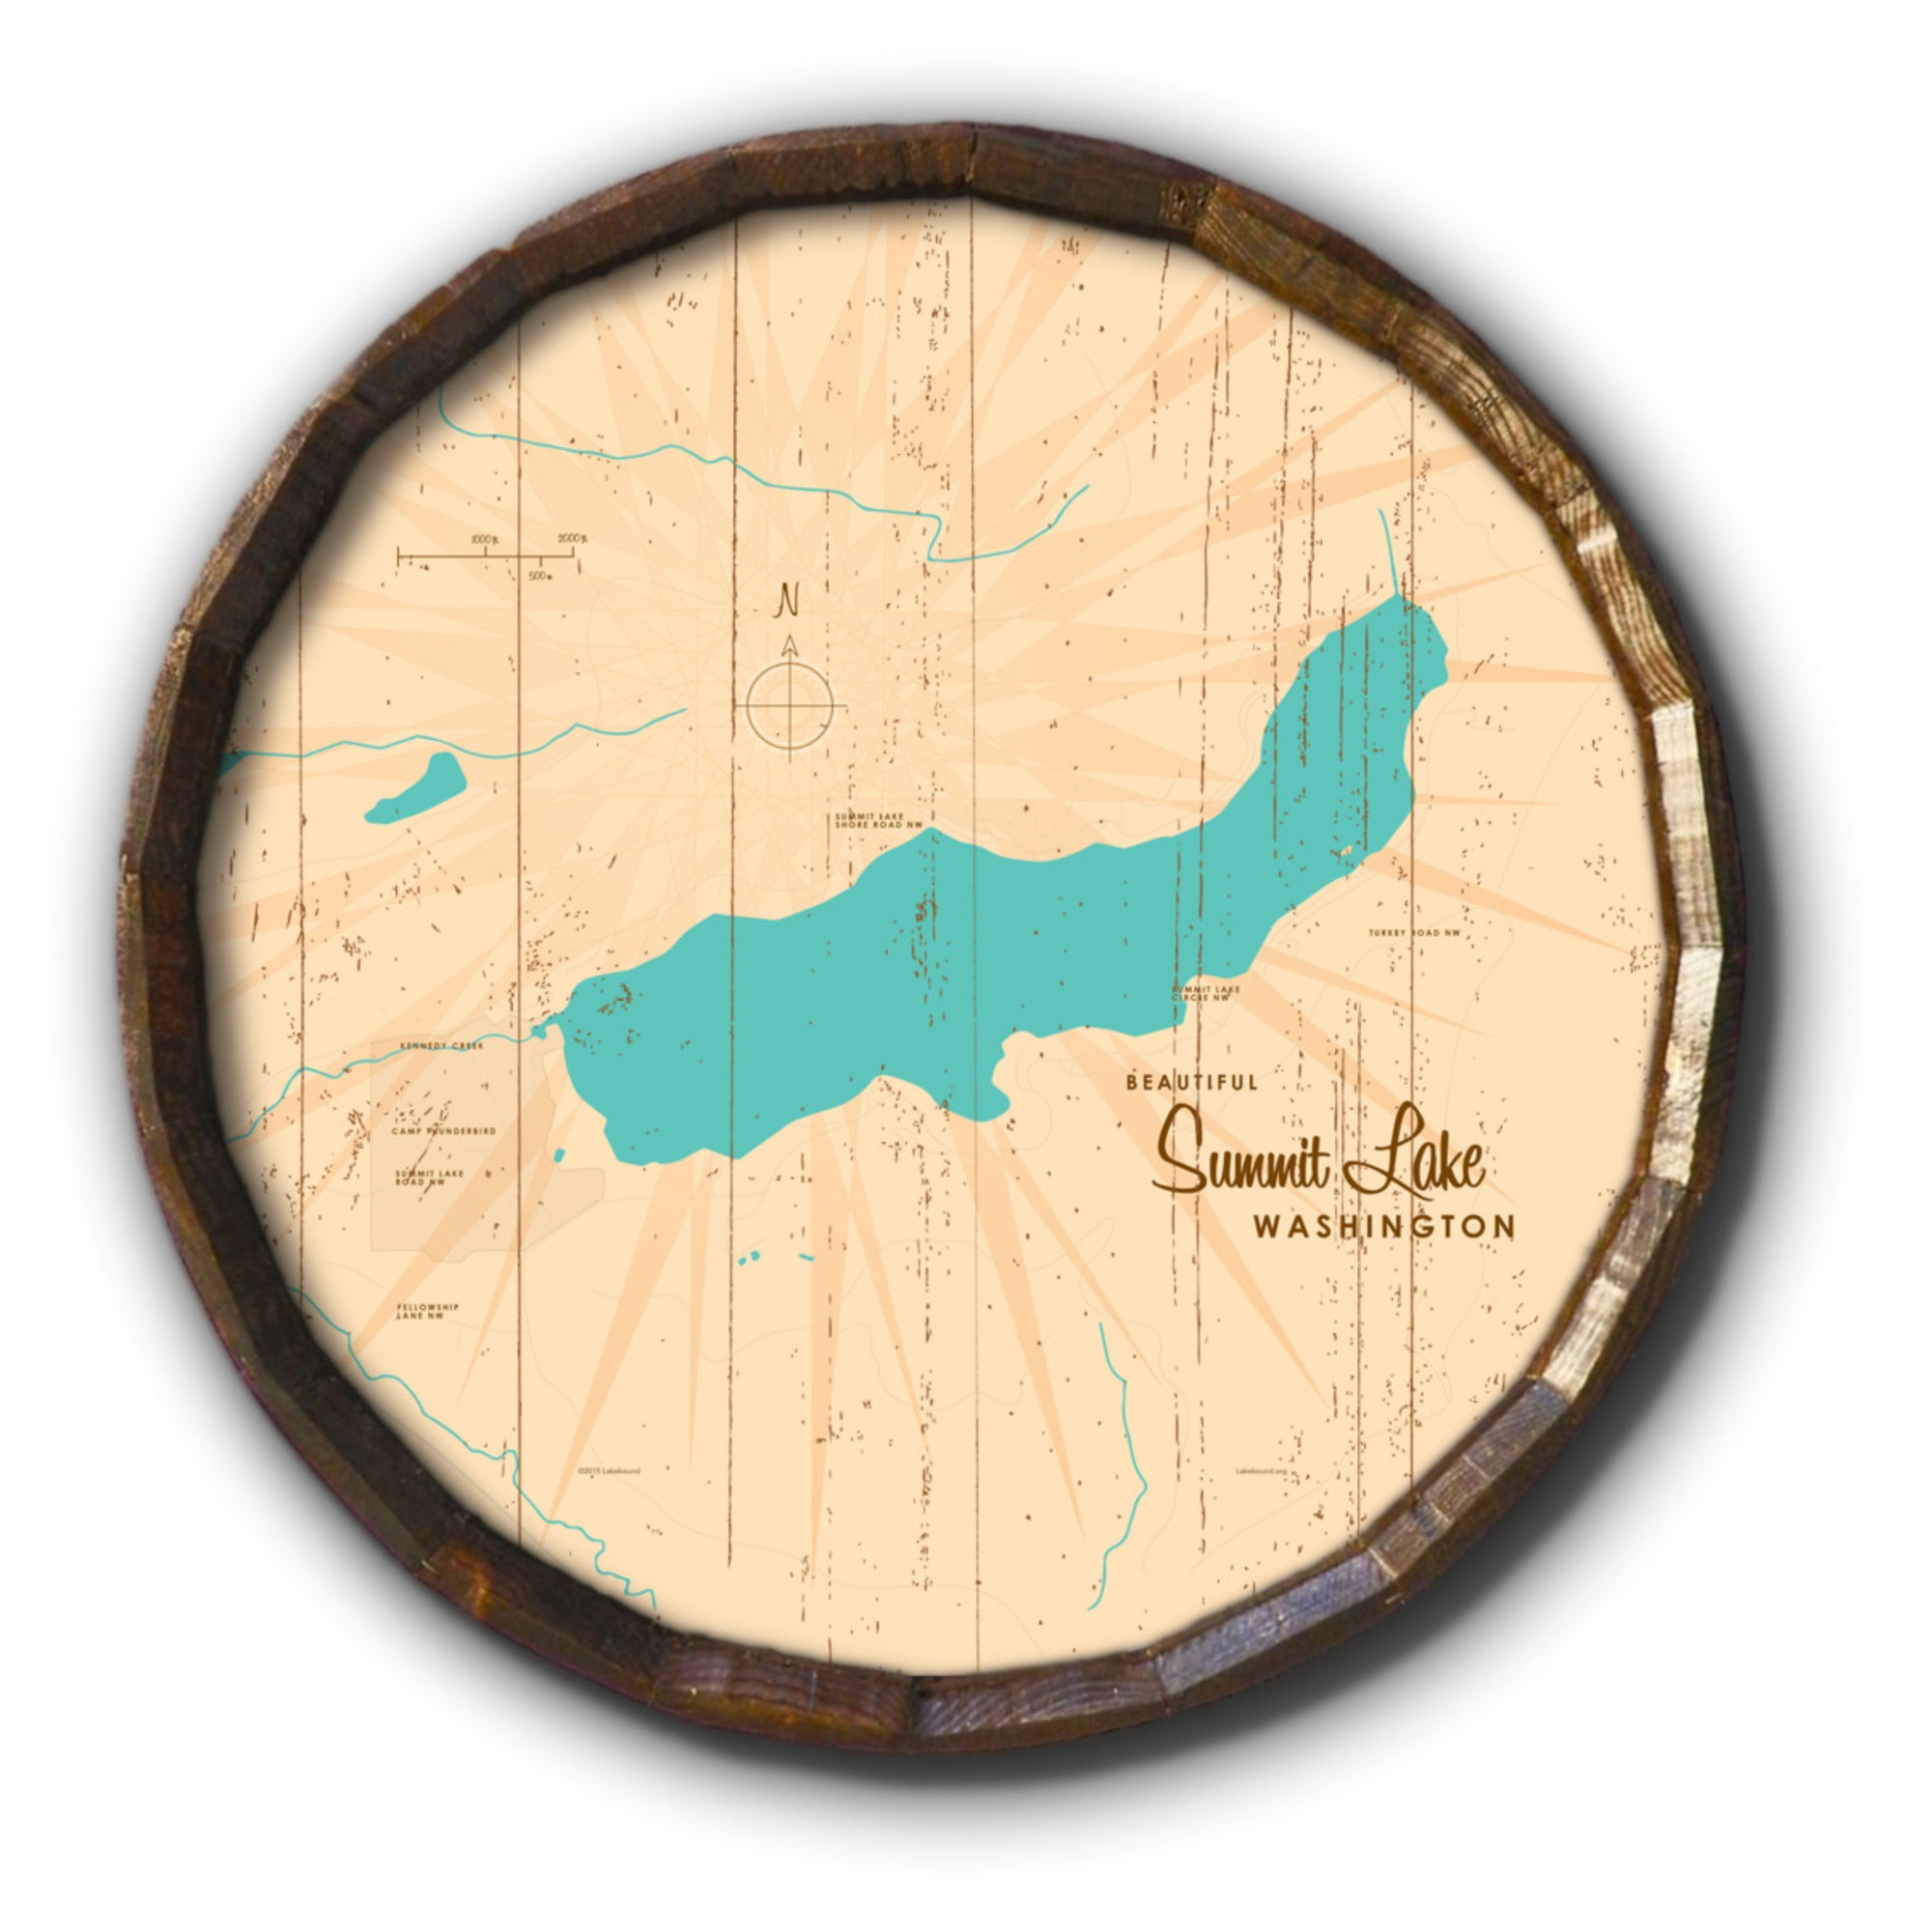 Summit Lake Washington, Rustic Barrel End Map Art